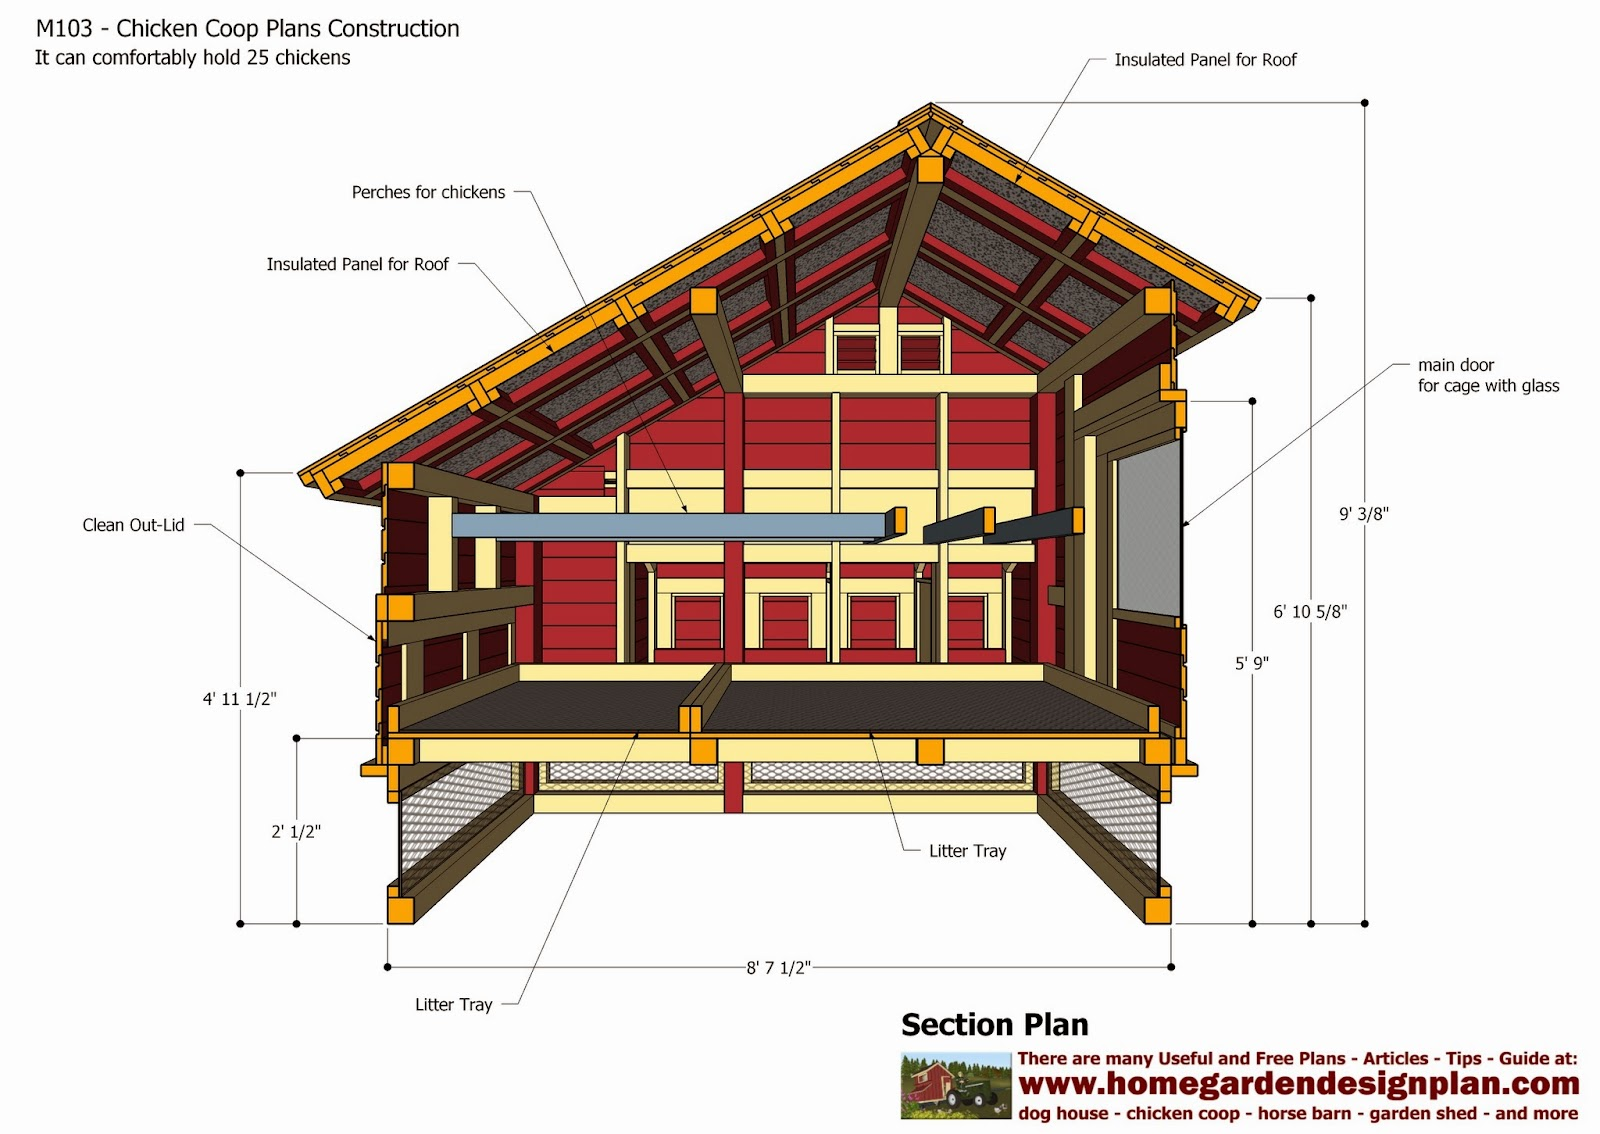 Coop chikens get poultry house construction plans free for Chicken house designs free